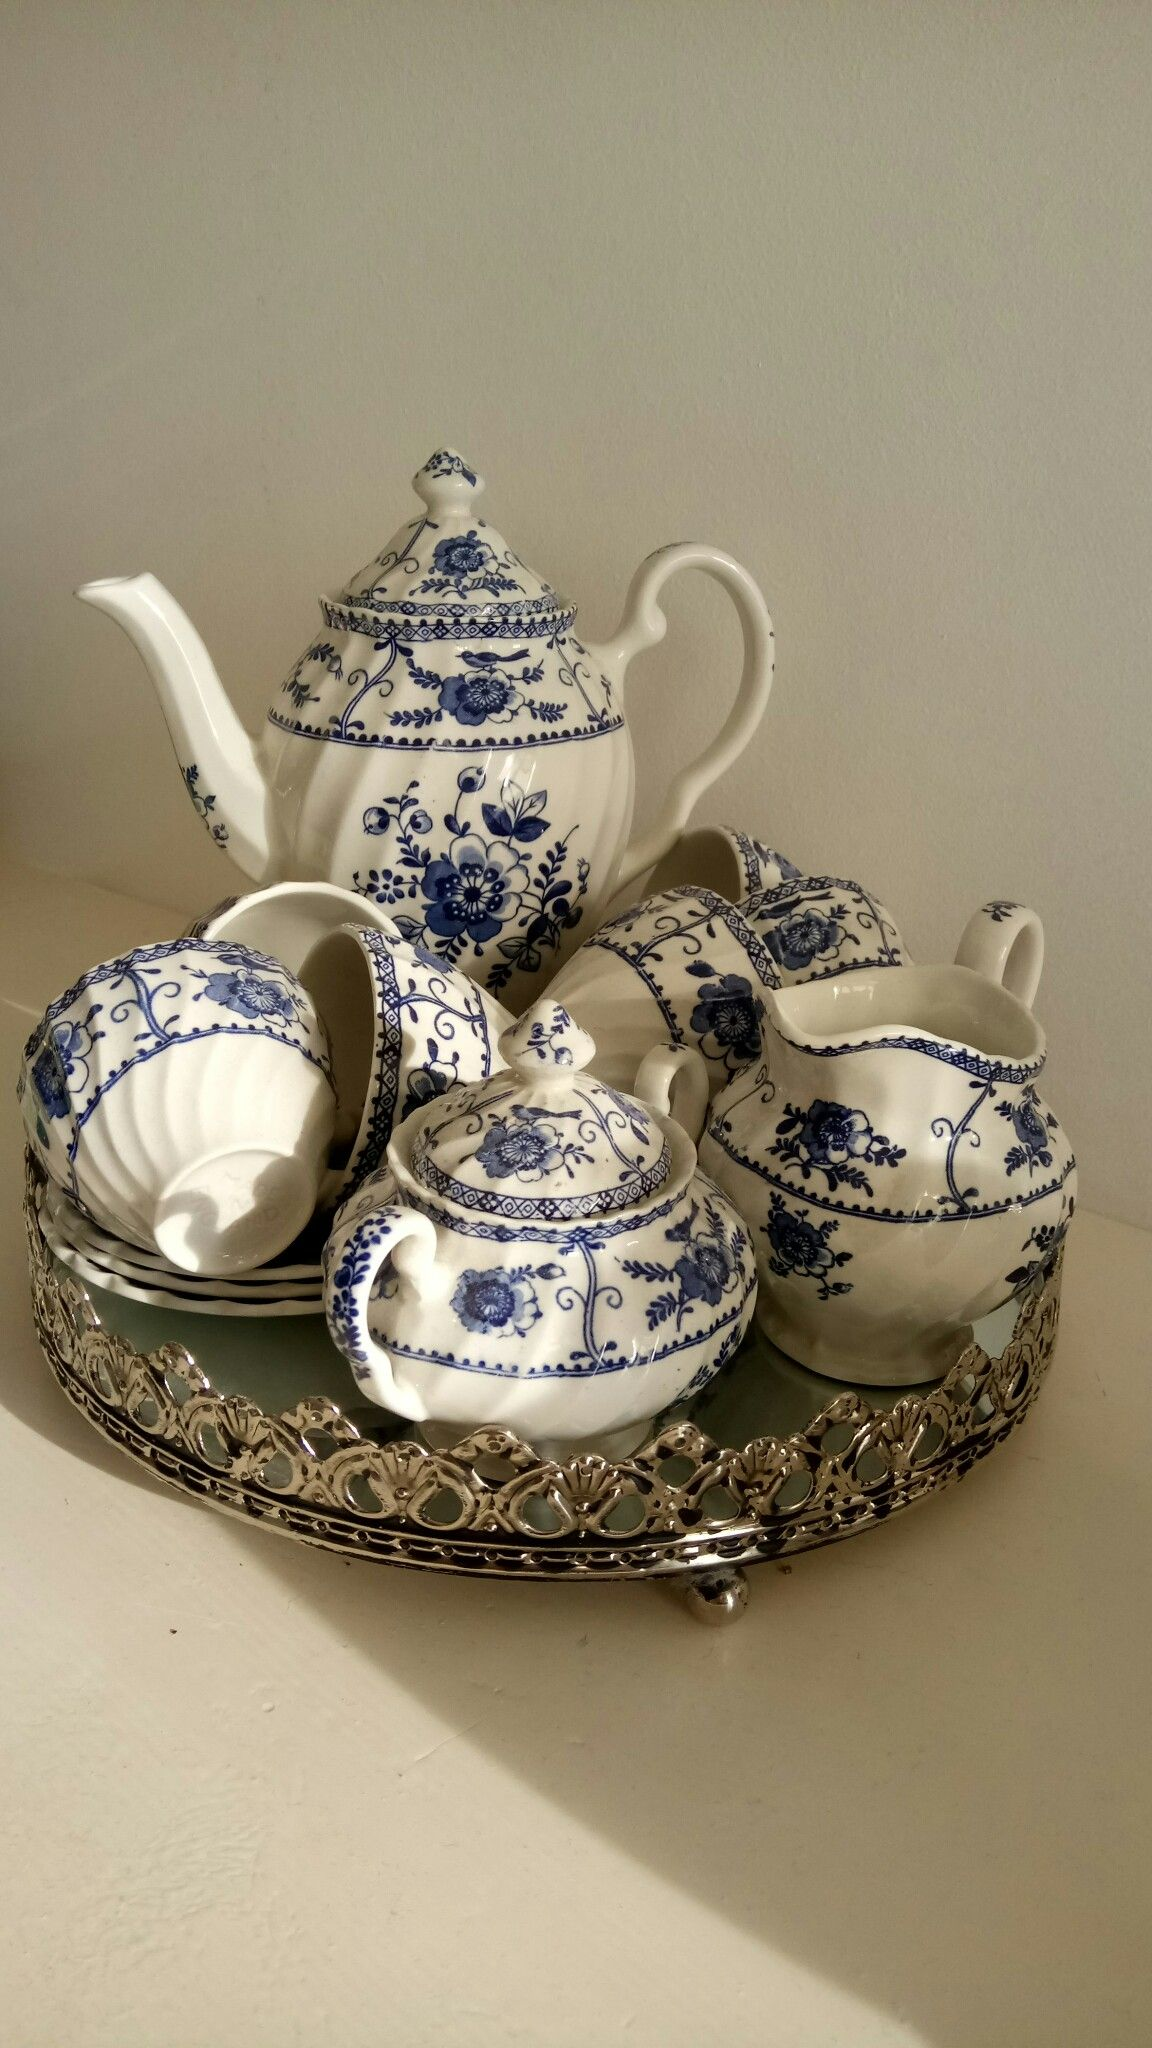 Gorgeous tea set #teapotset